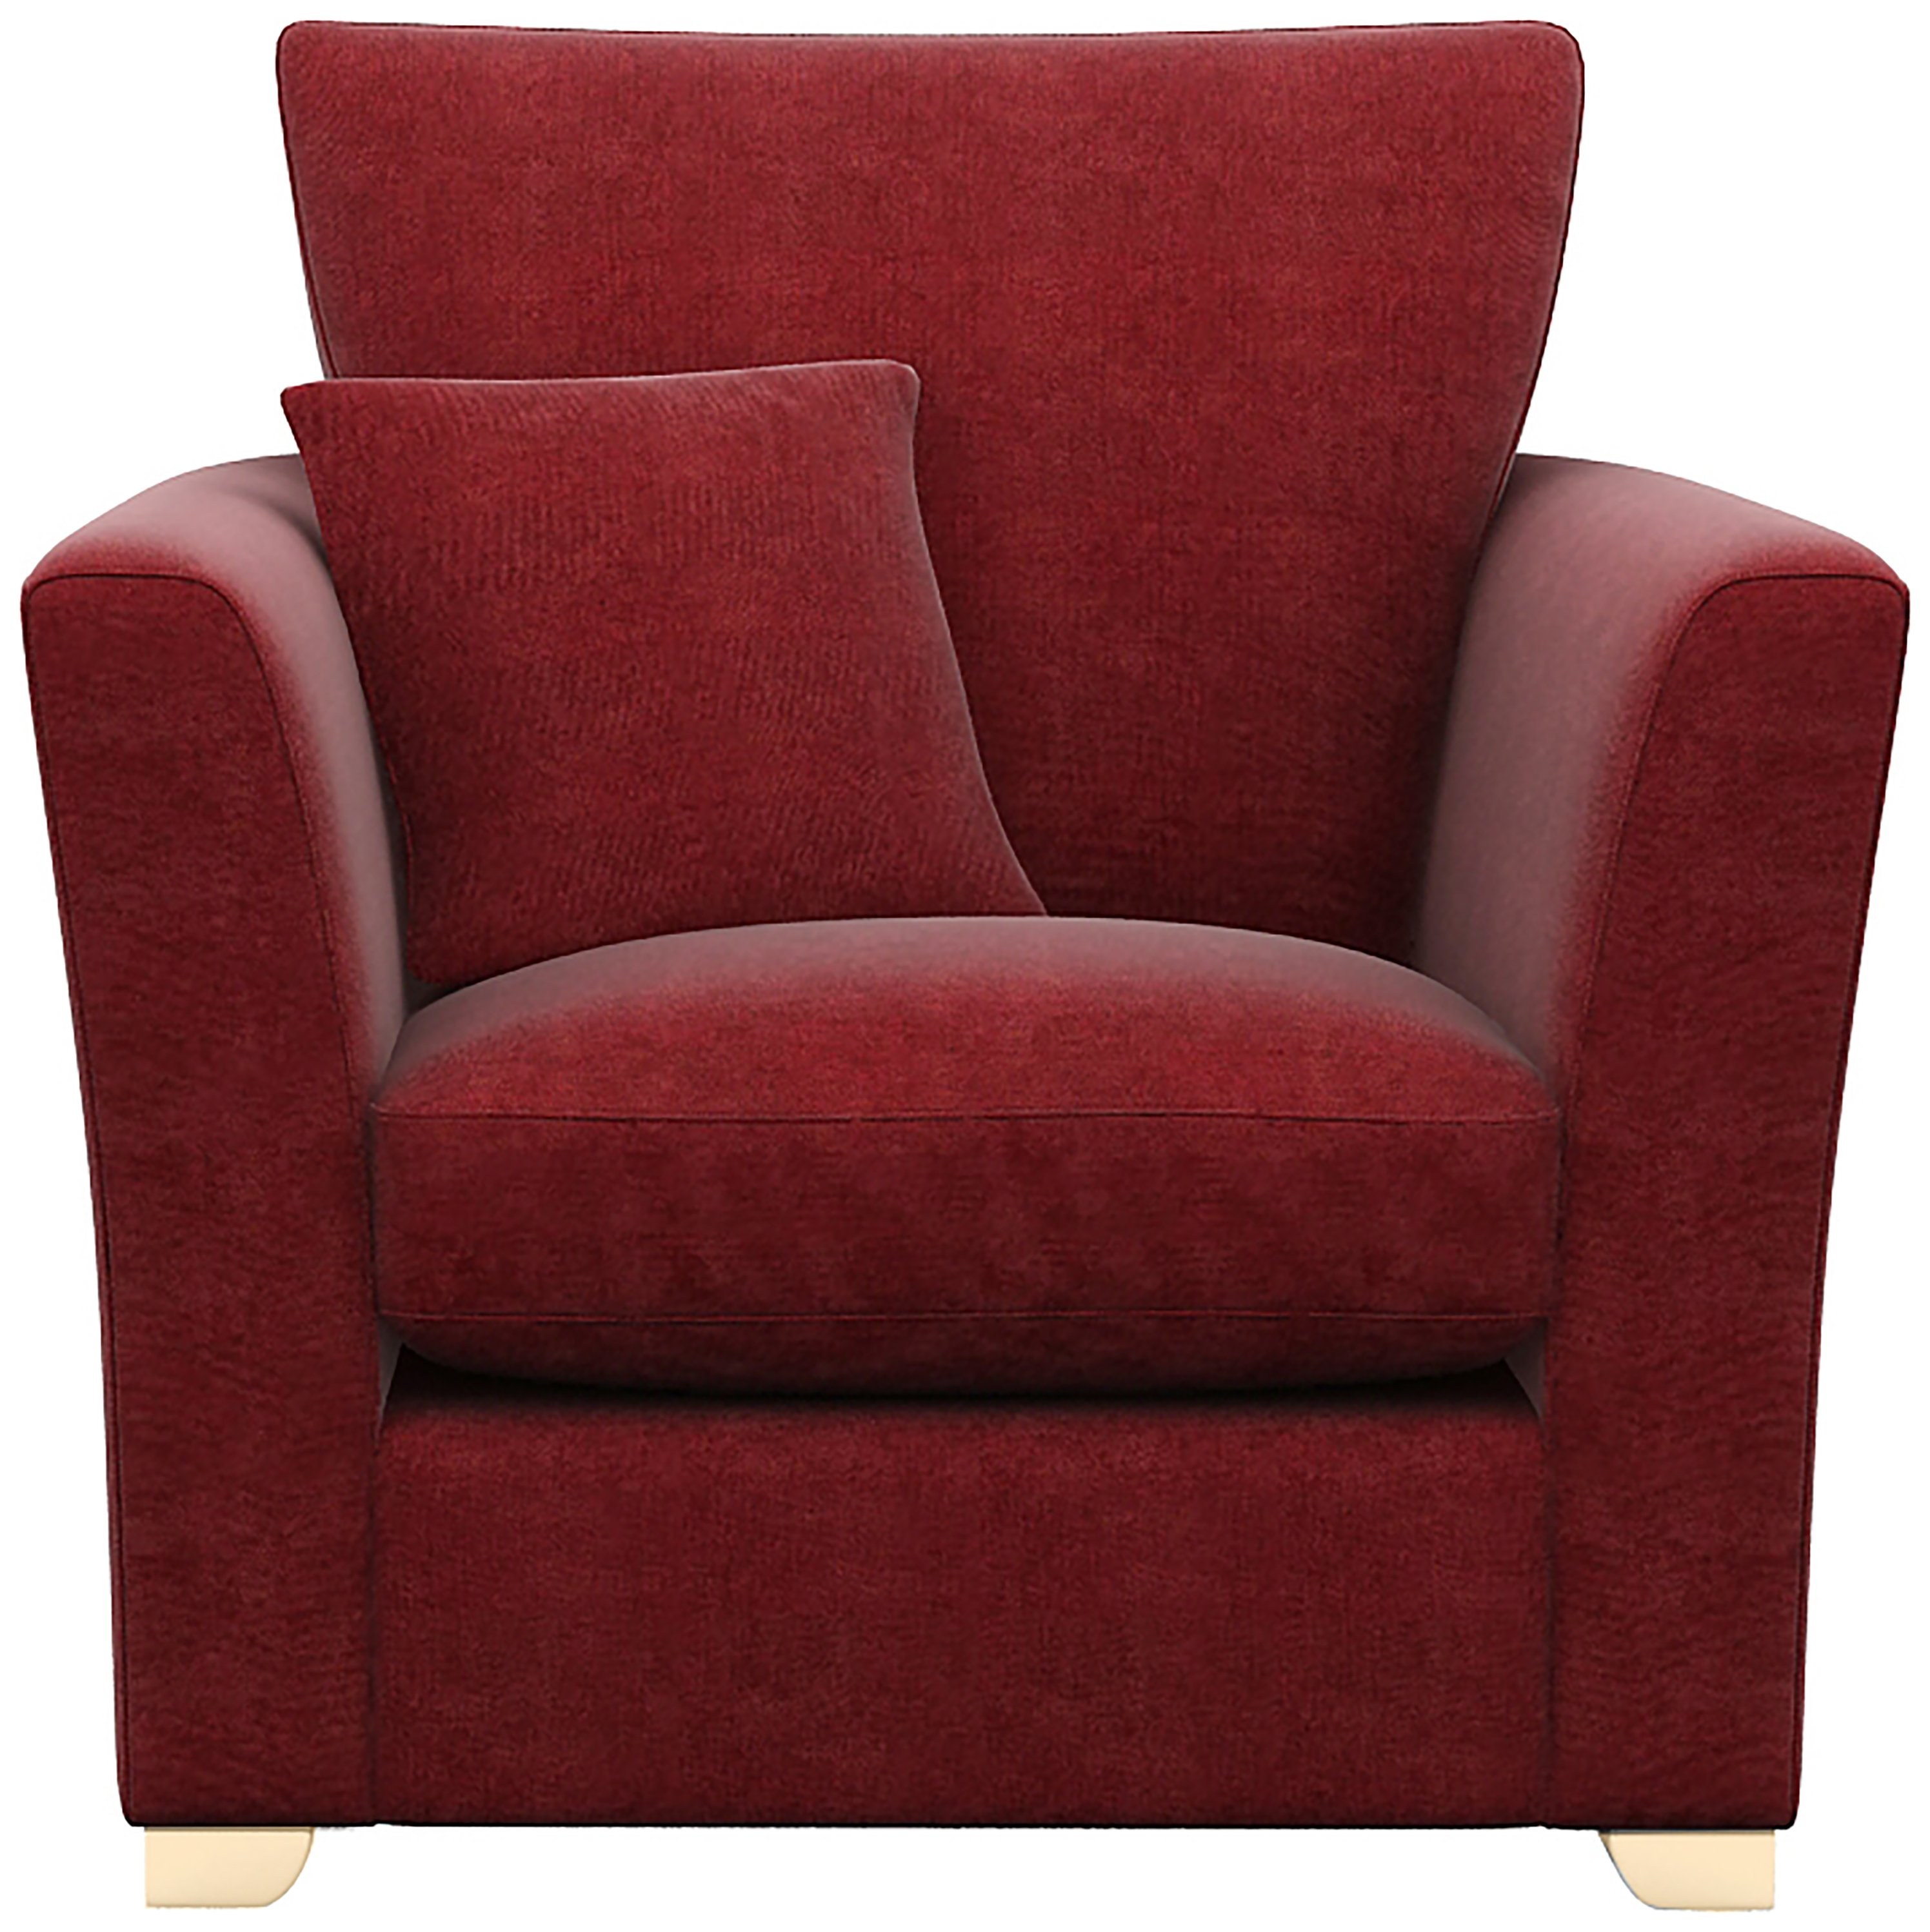 Image of Libby Fabric Chair - Red